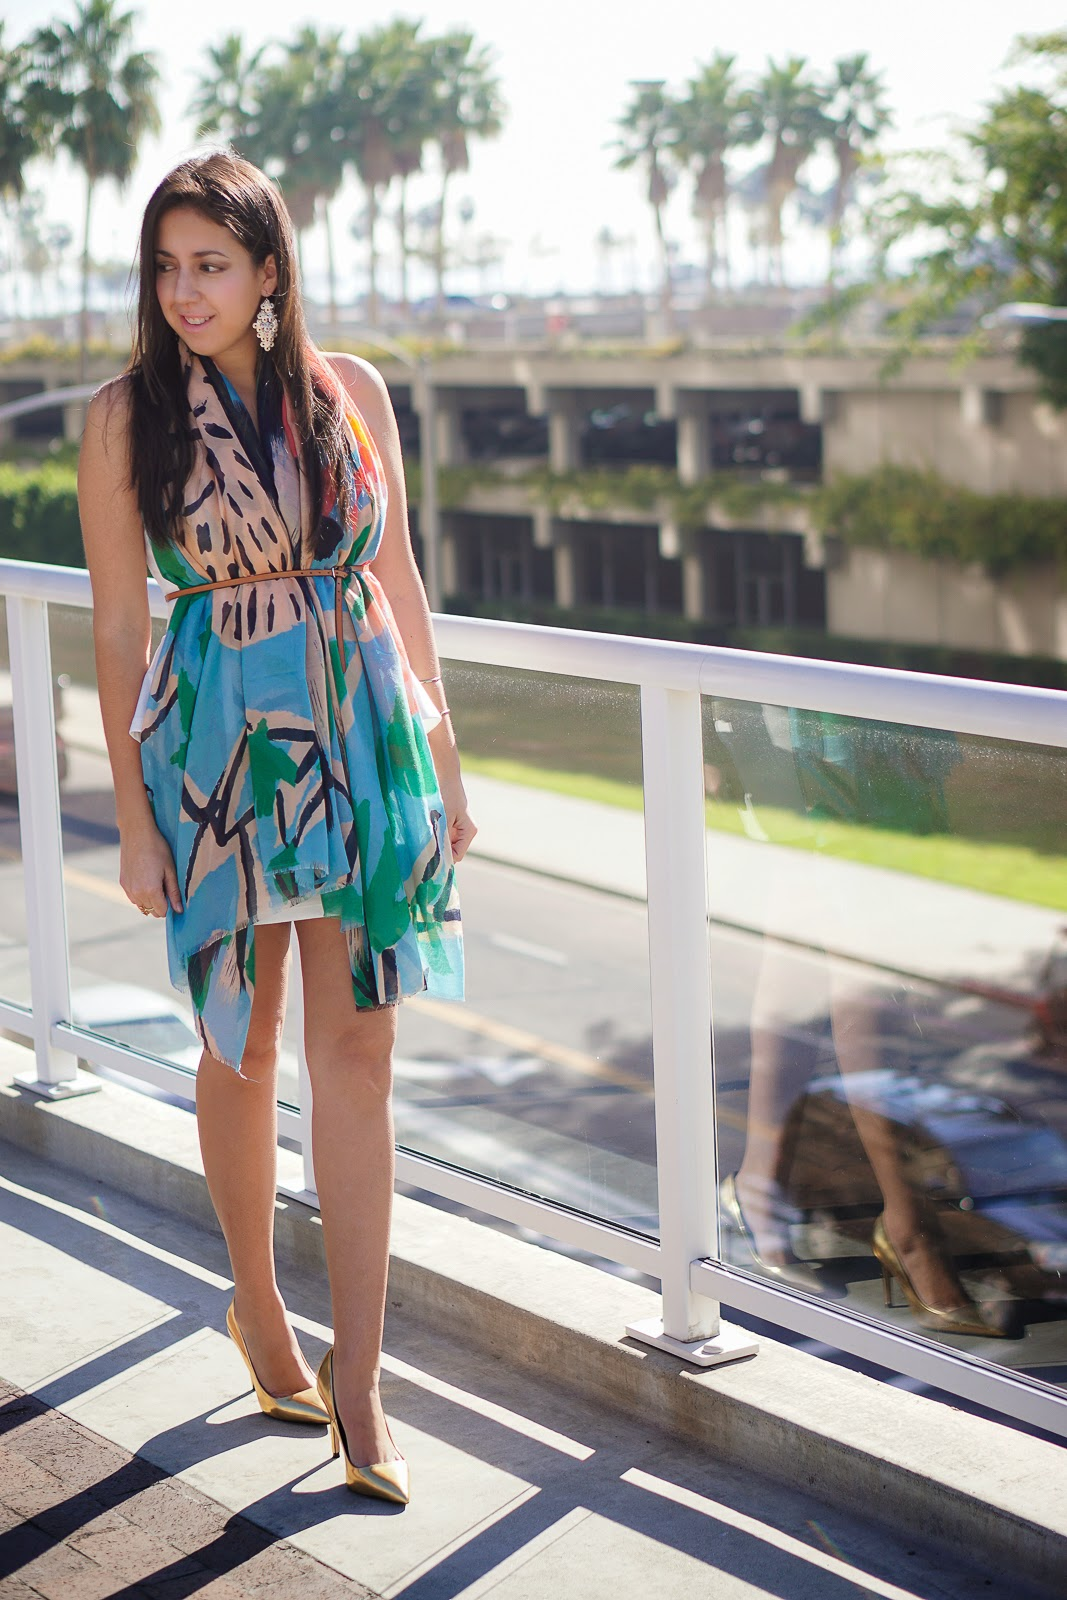 How to wear a scarf, Zara scarf, Watercolor scarf, Bright Colorful Scarf, Spring Style, Belted Scarf, White Dress, Foreign Exchange Dress, Thin leather Belt, Banana Republic Belt, Forever 21 Gold Earrings, Gold pumps, Zara heels, Zara gold heels, Spring 2015 Fashion Trend